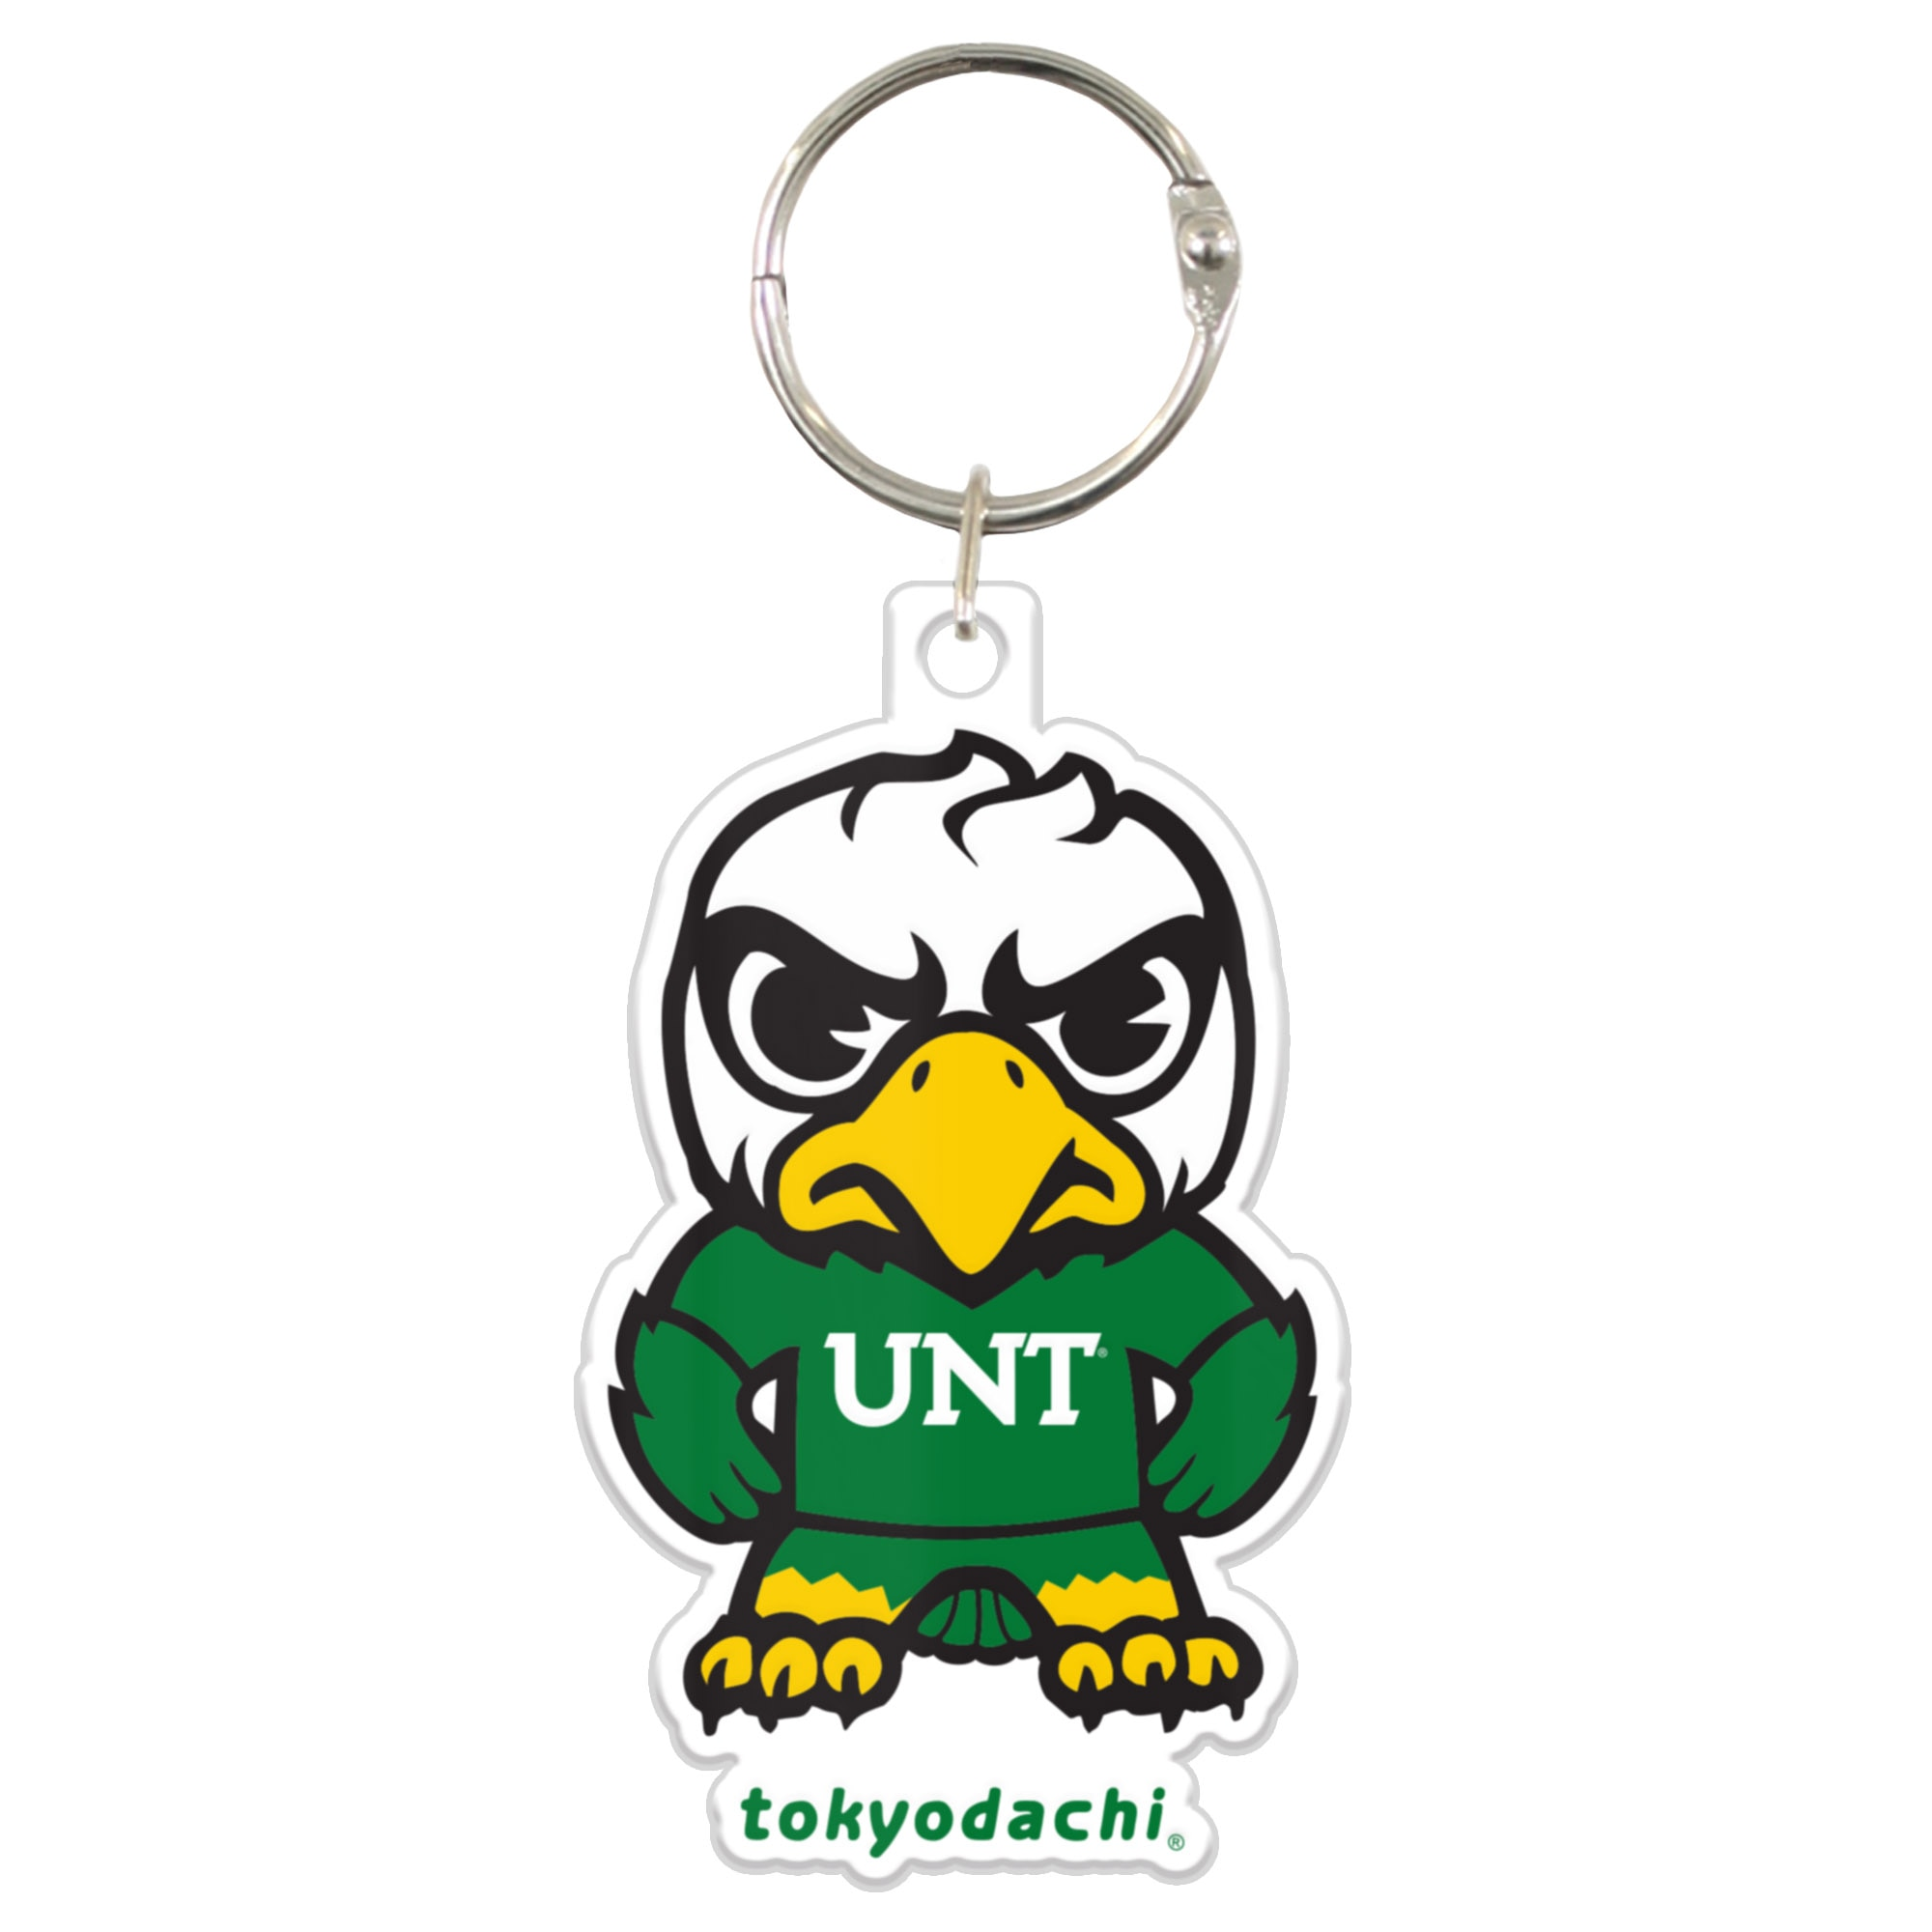 University of North Texas TOKYODACHI Key Tag